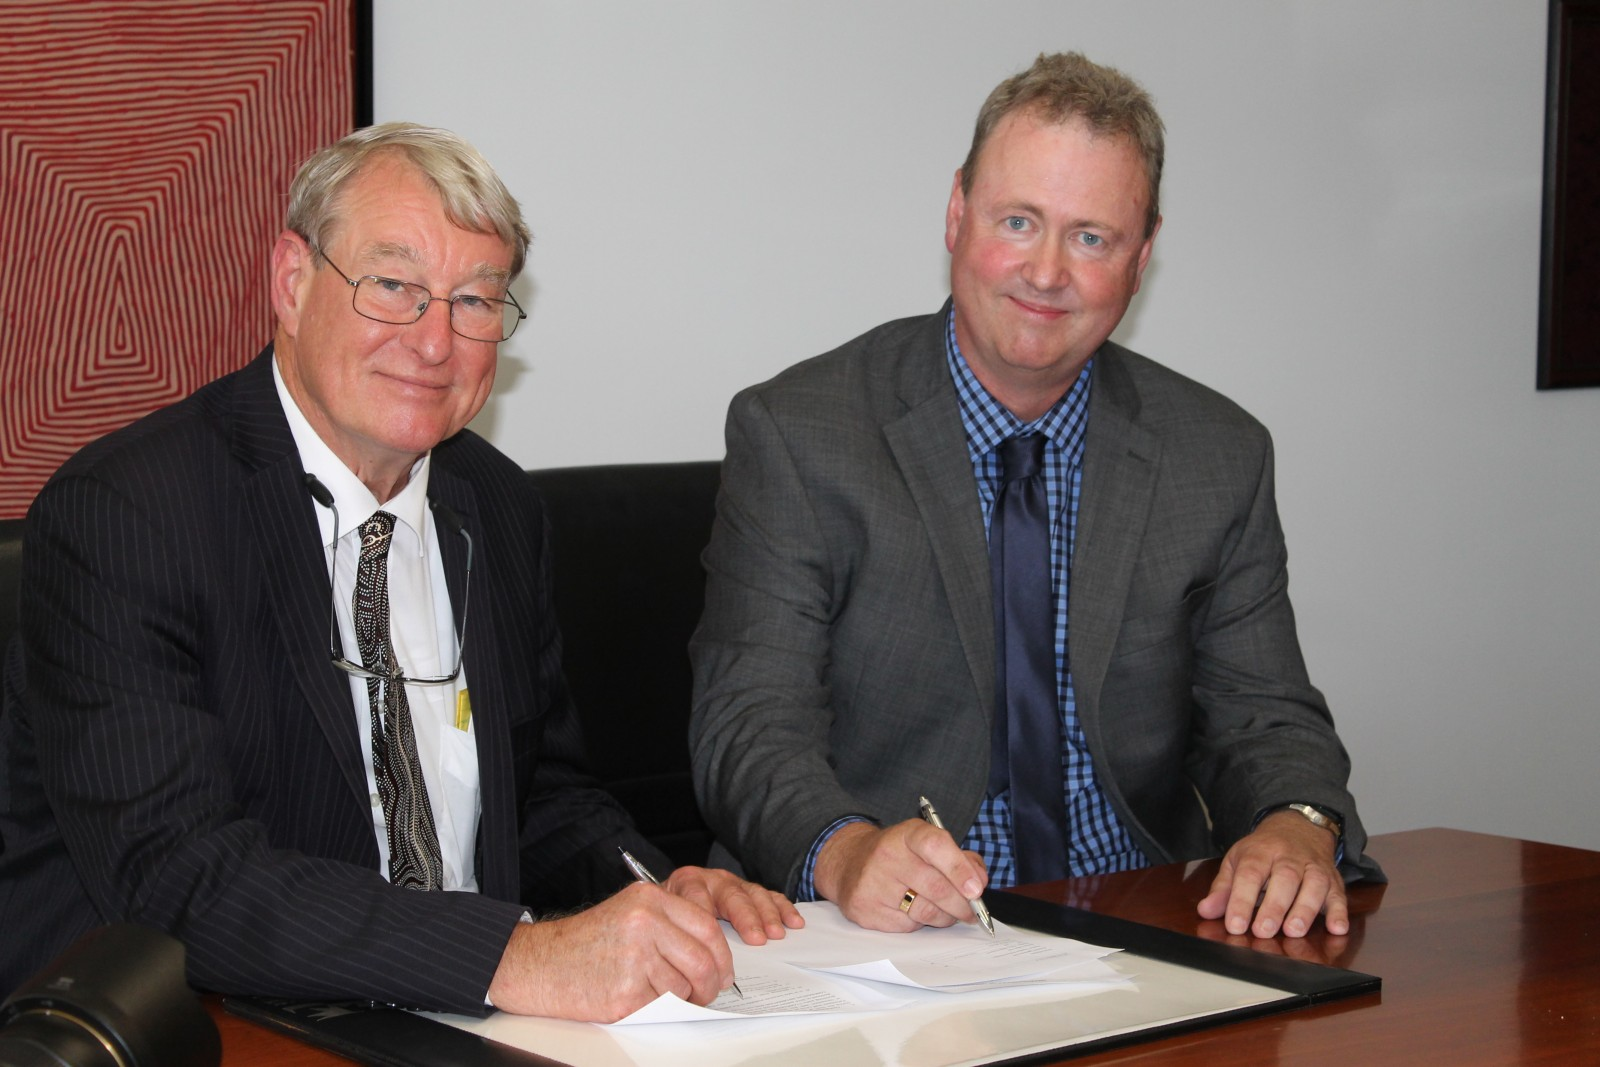 University of the Sunshine Coast's Vice-Chancellor and President Professor Greg Hill with Brock Professor Gary Pickering at the MOU signing. Photo by Terry Walsh.